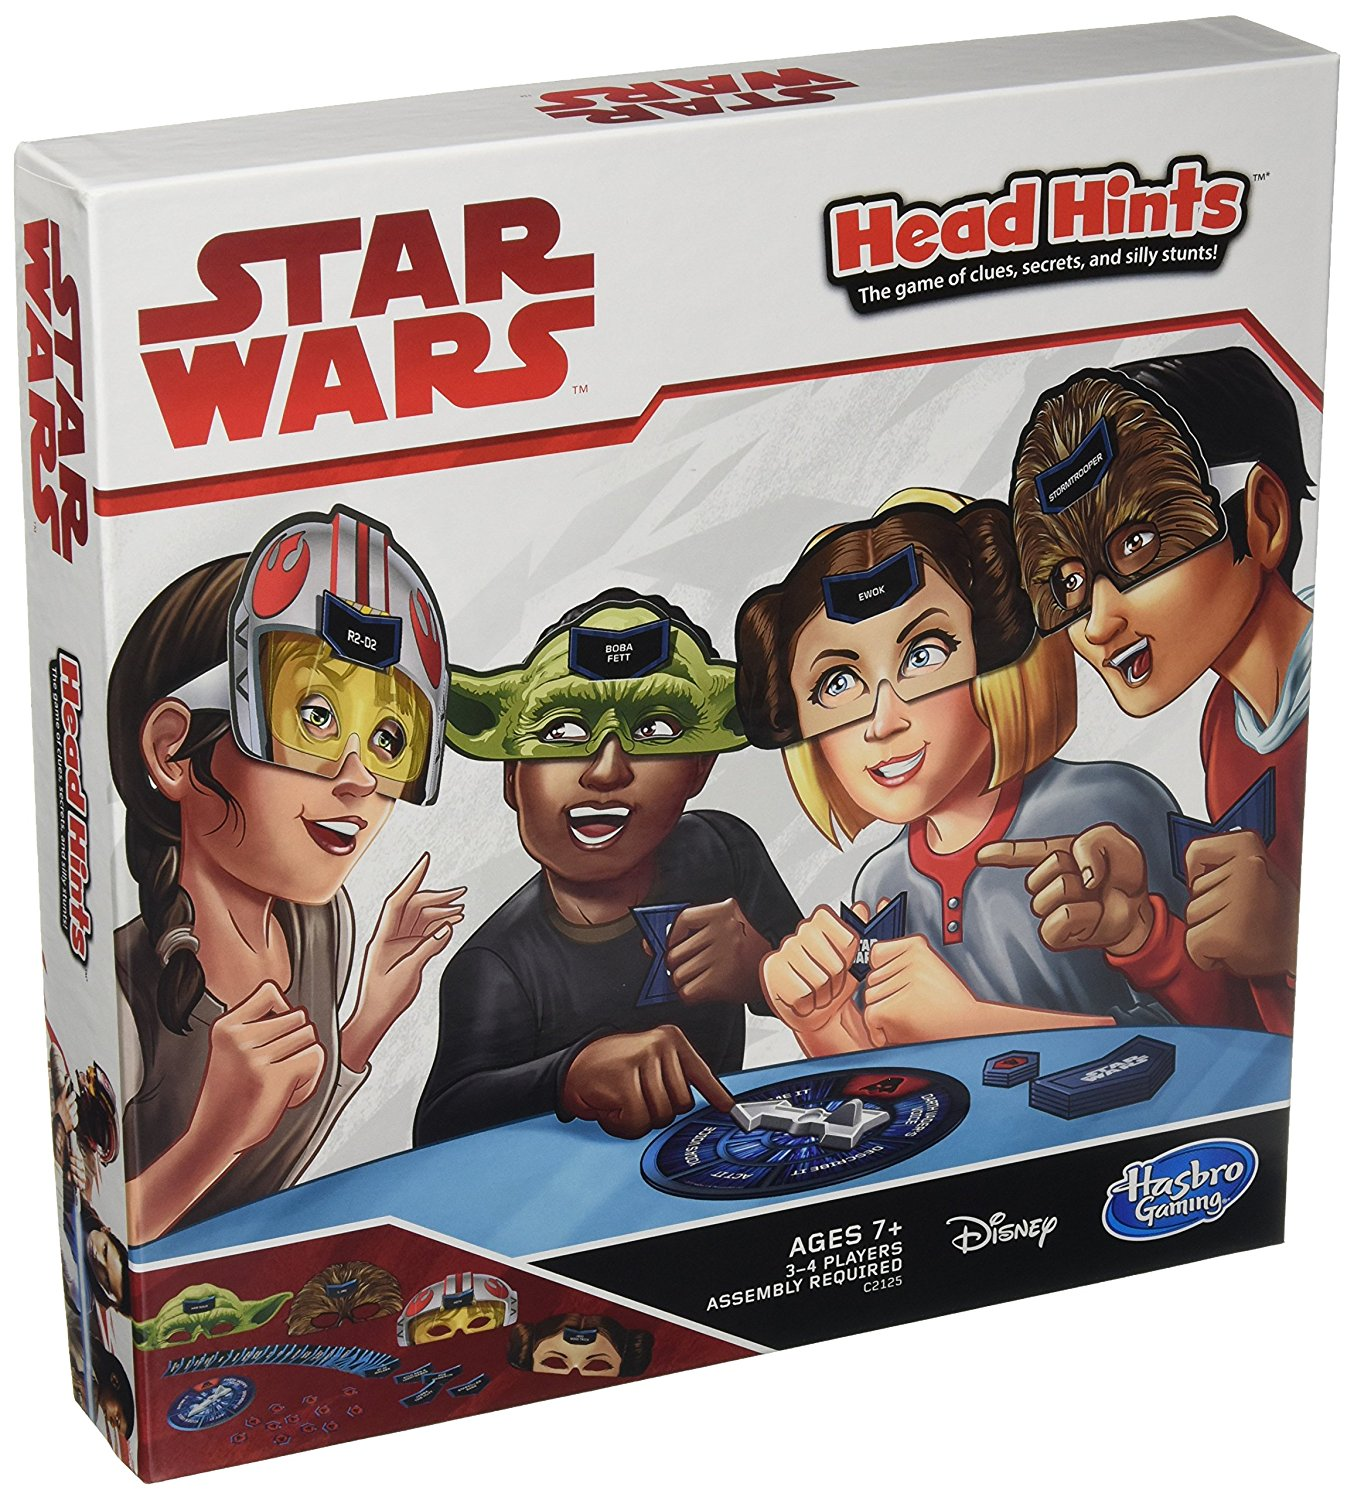 Head Hints: Star Wars Edition, The game of clues, secrets, and silly stunts By Hasbro by